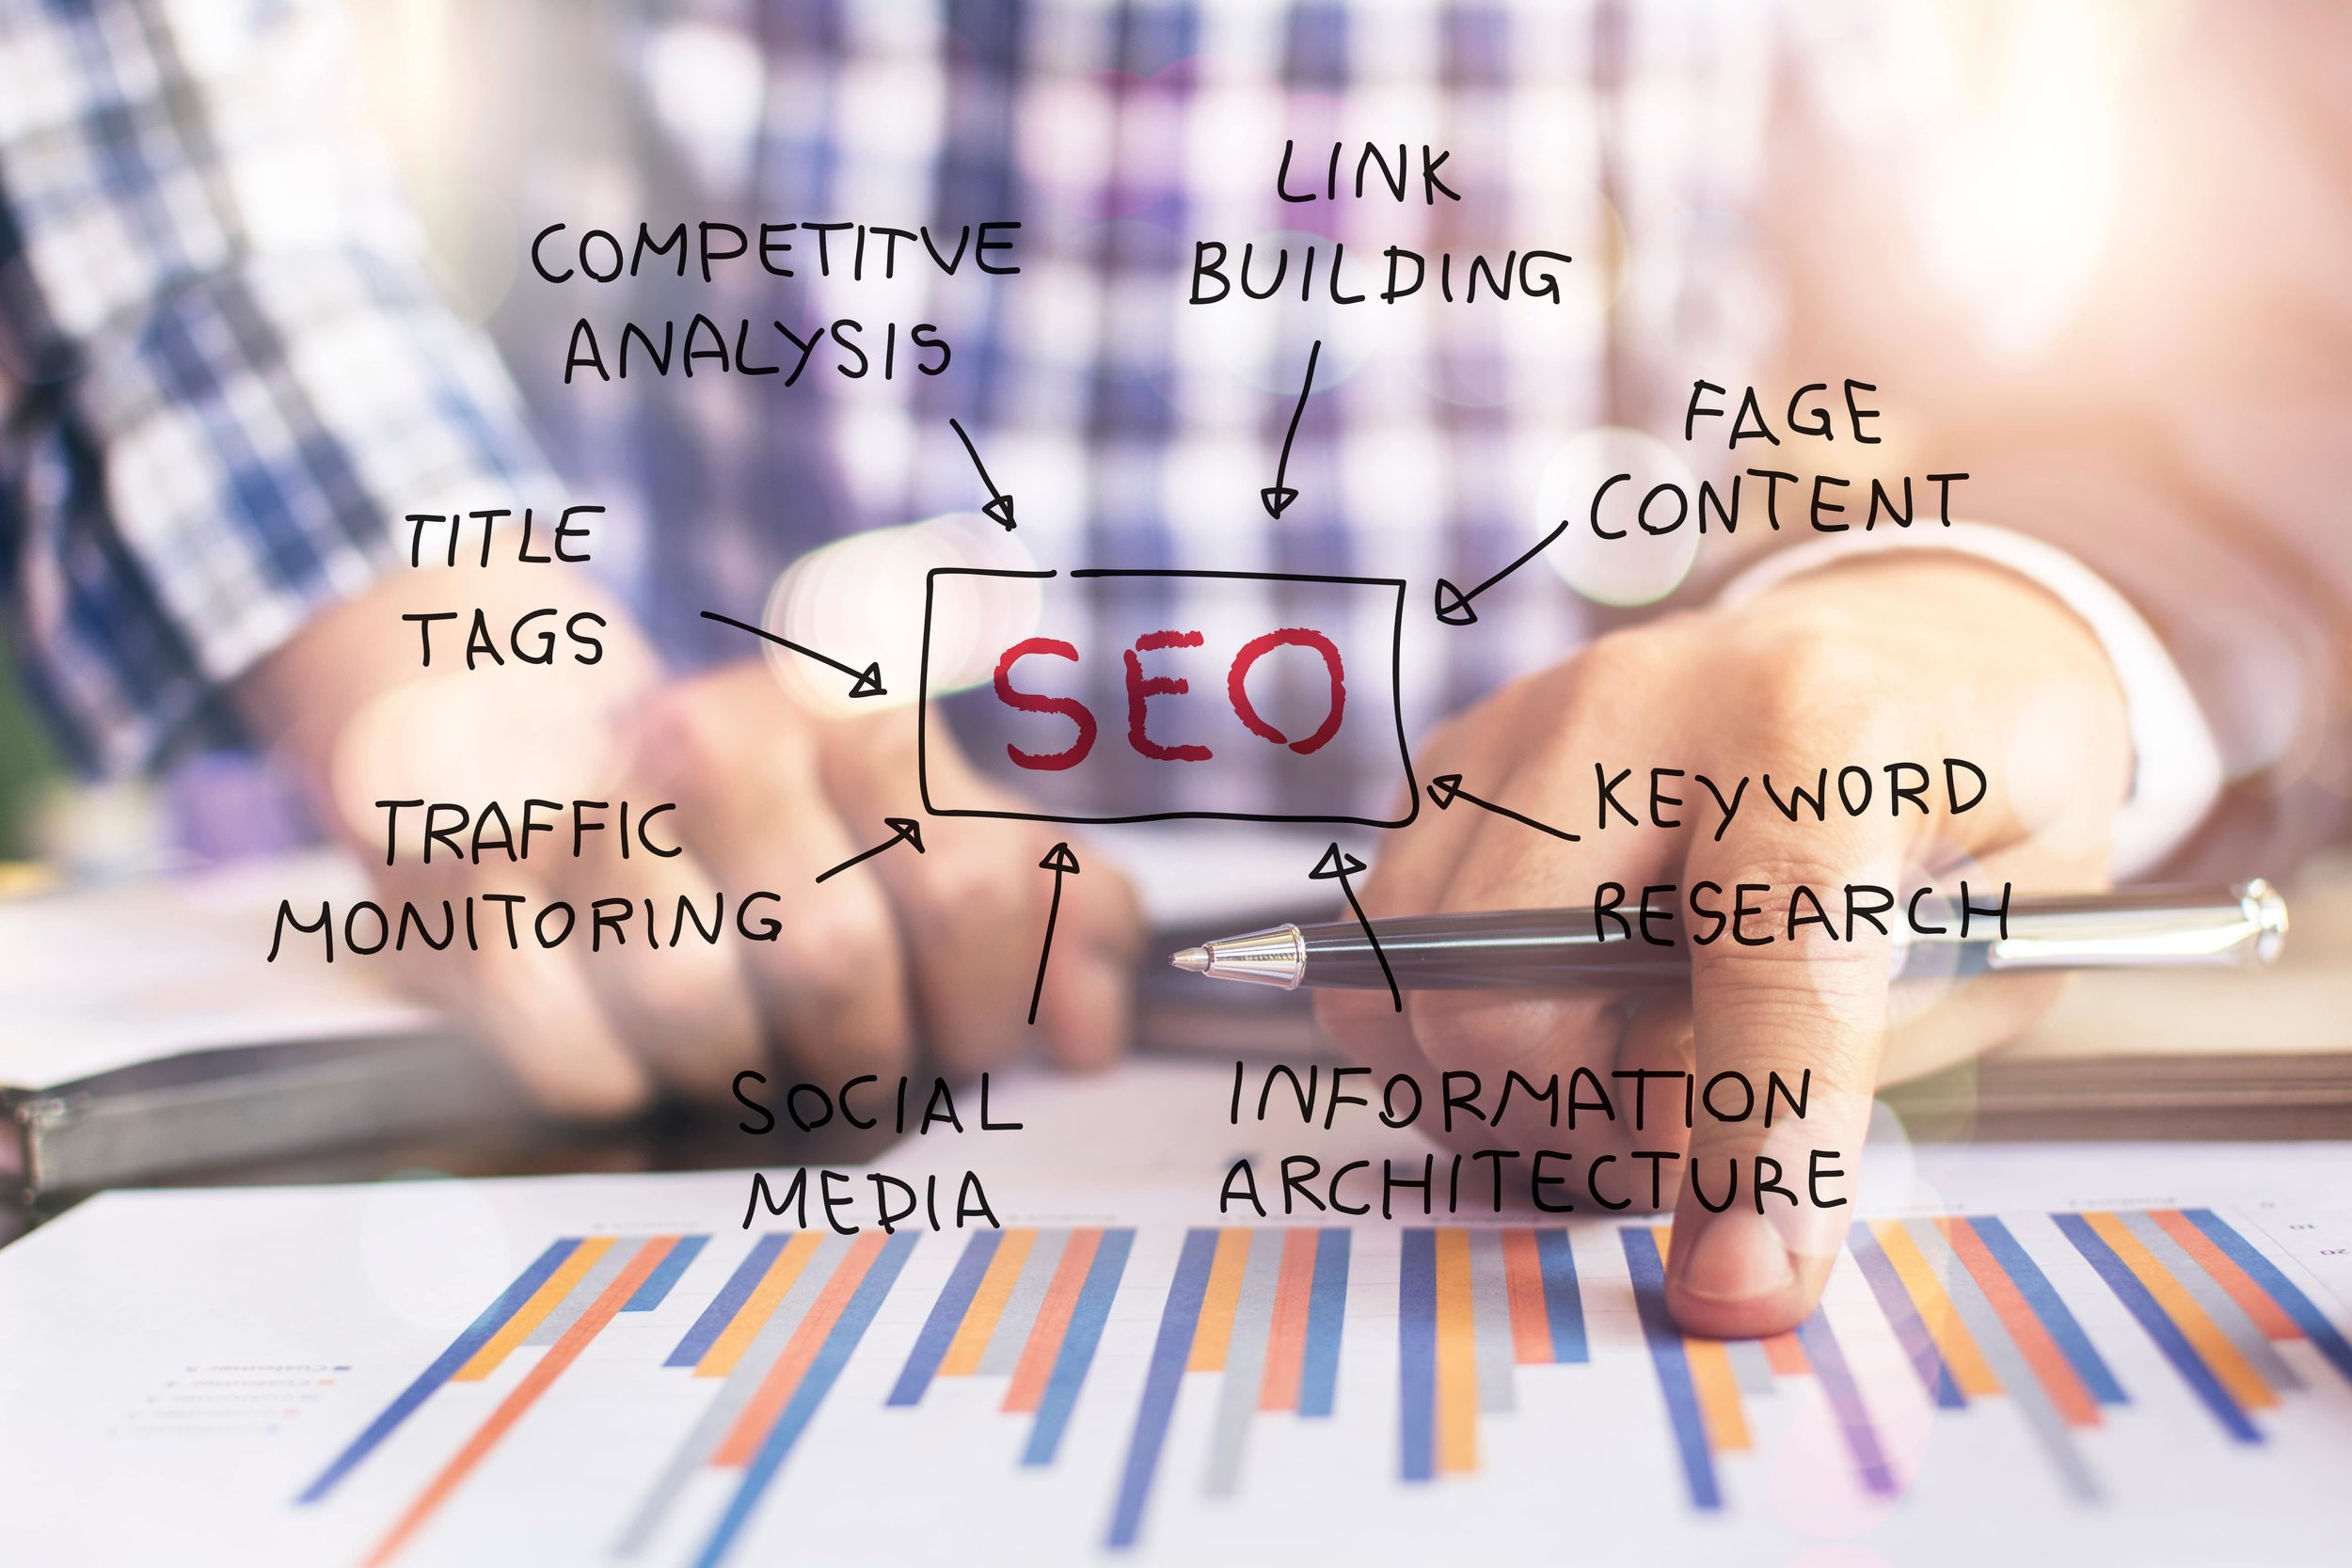 Canva - wolfhound-digtial-website-review-SEO Search Engine Optimization Internet Data-min.jpg